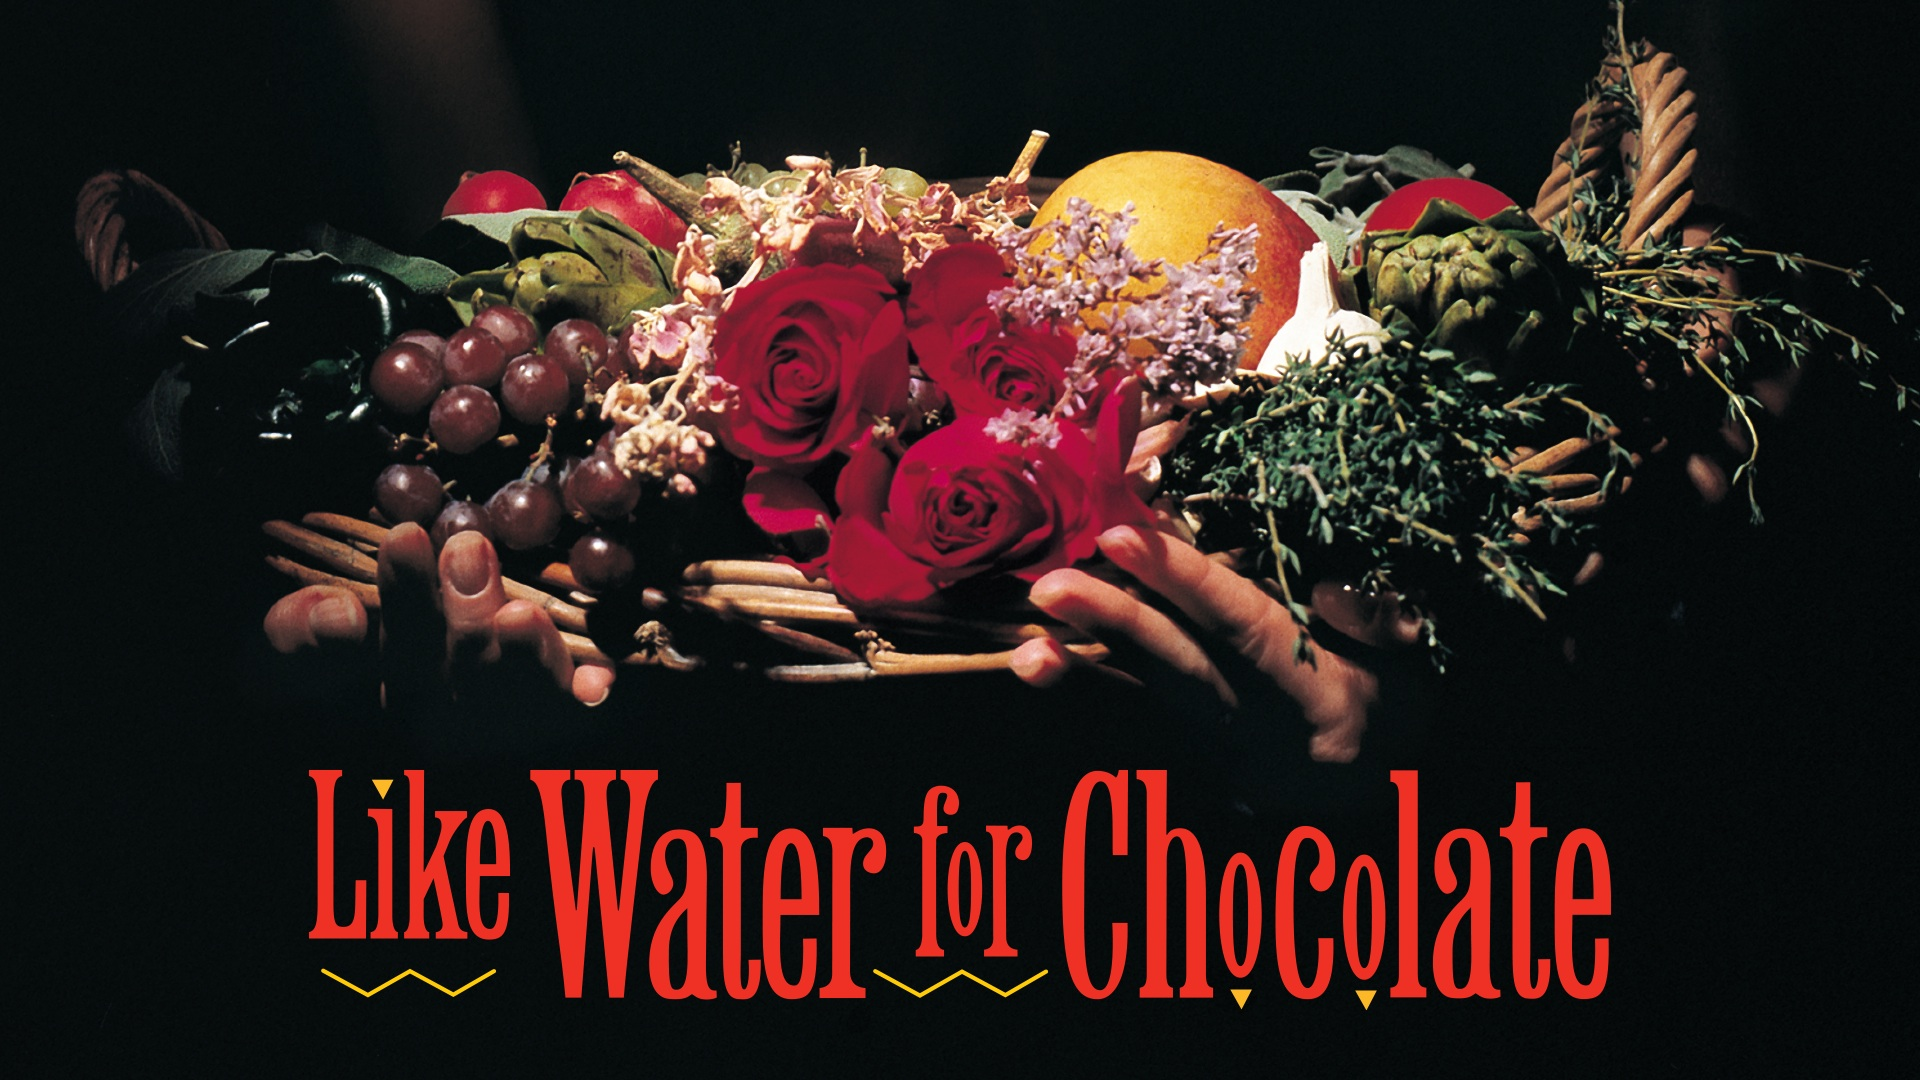 Like Water for Chocolate - Official Trailer (HD)